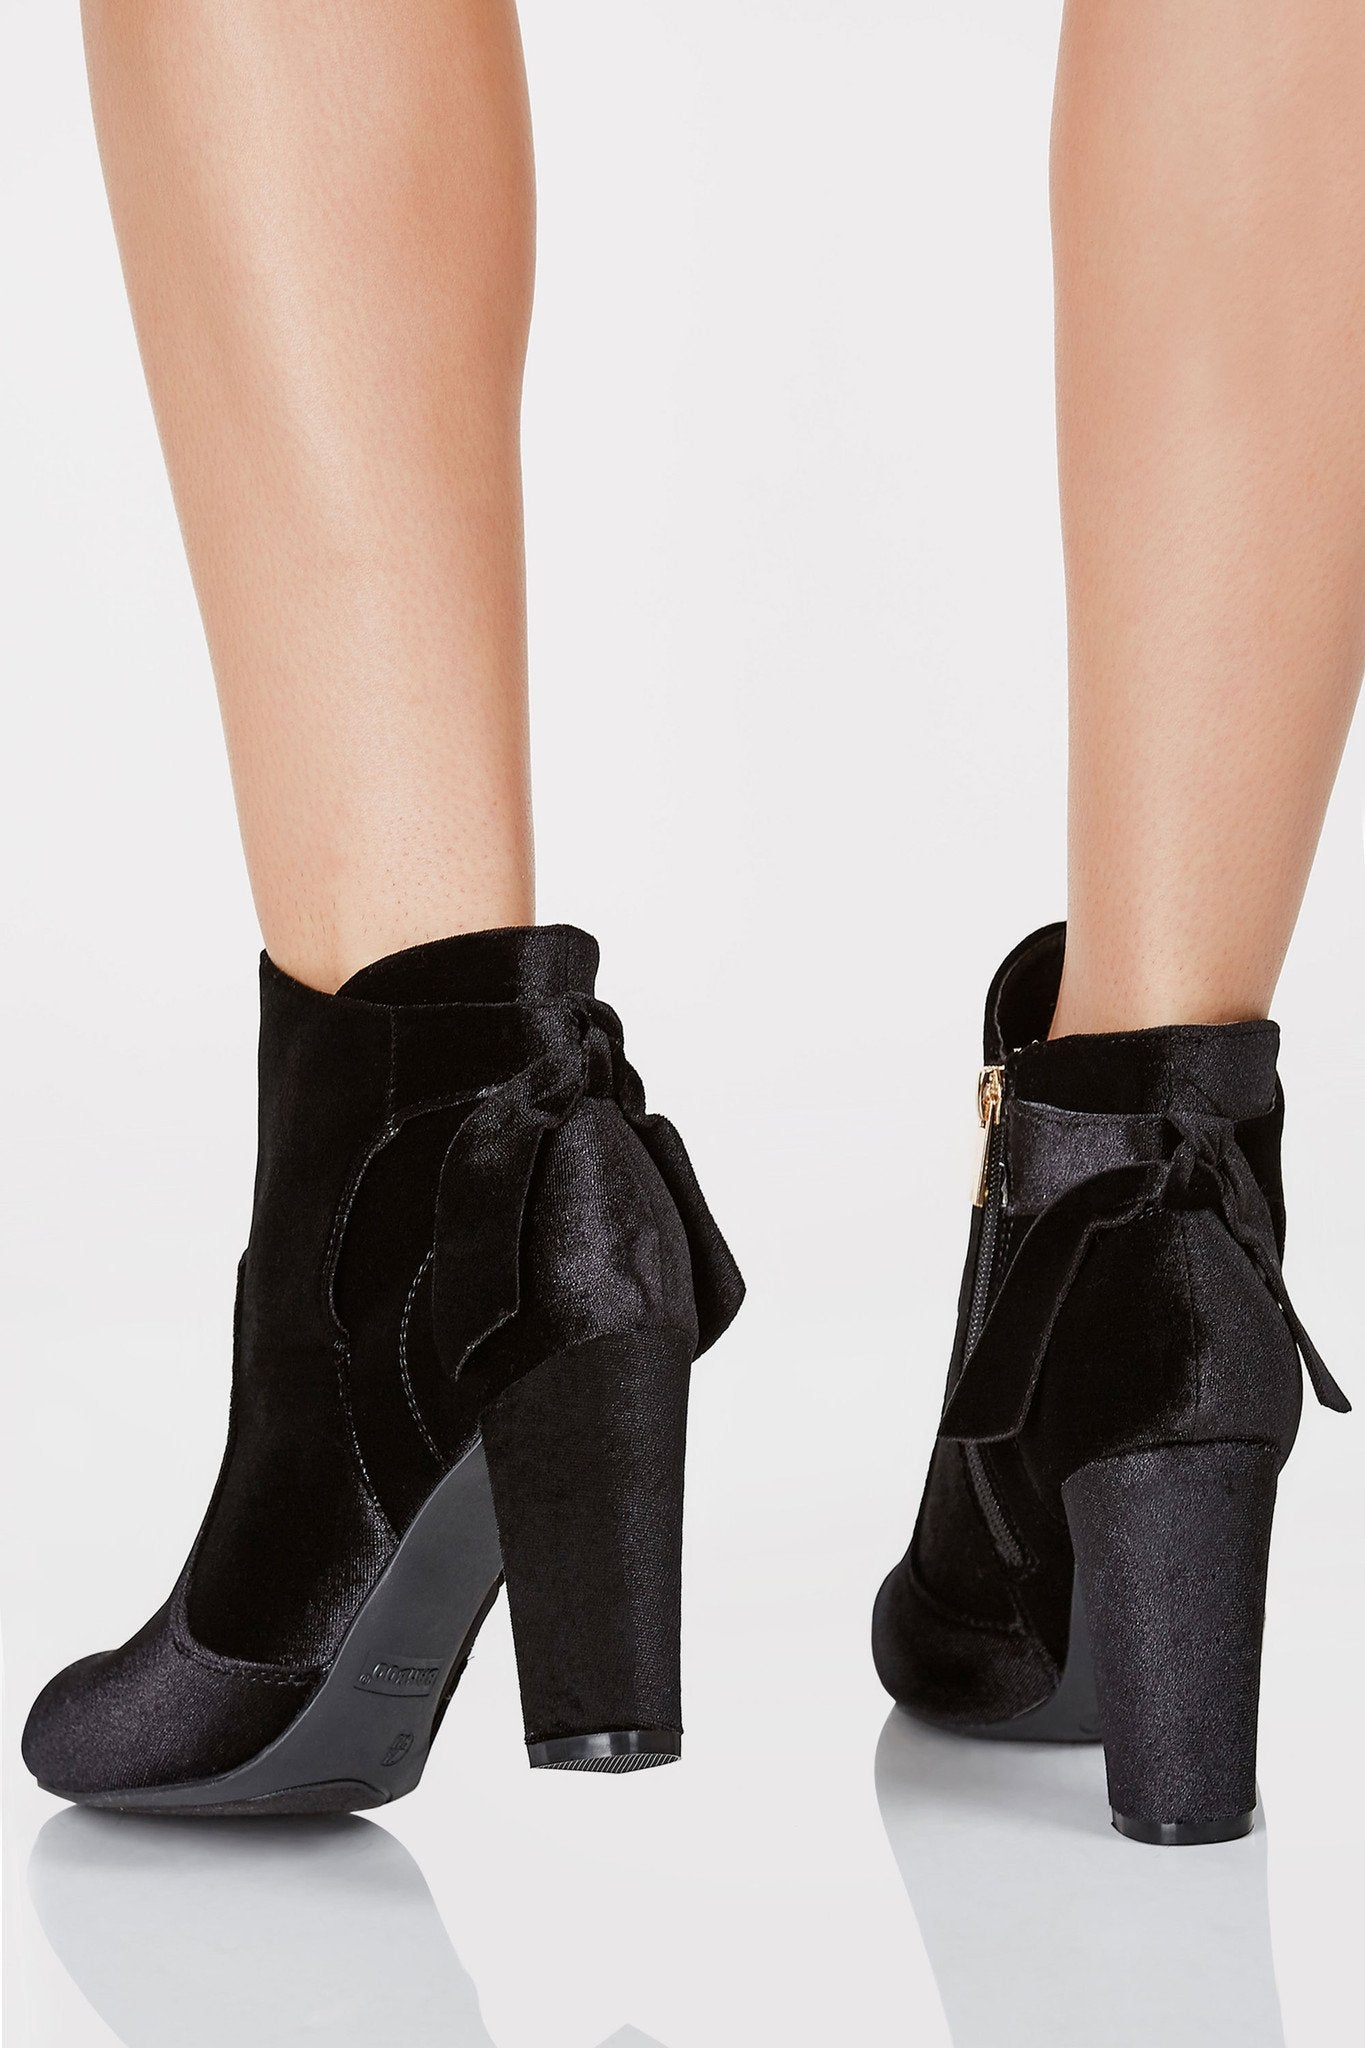 Rounded toe ankle boots with velvet finish. Side zip closure with bow detailing at back.